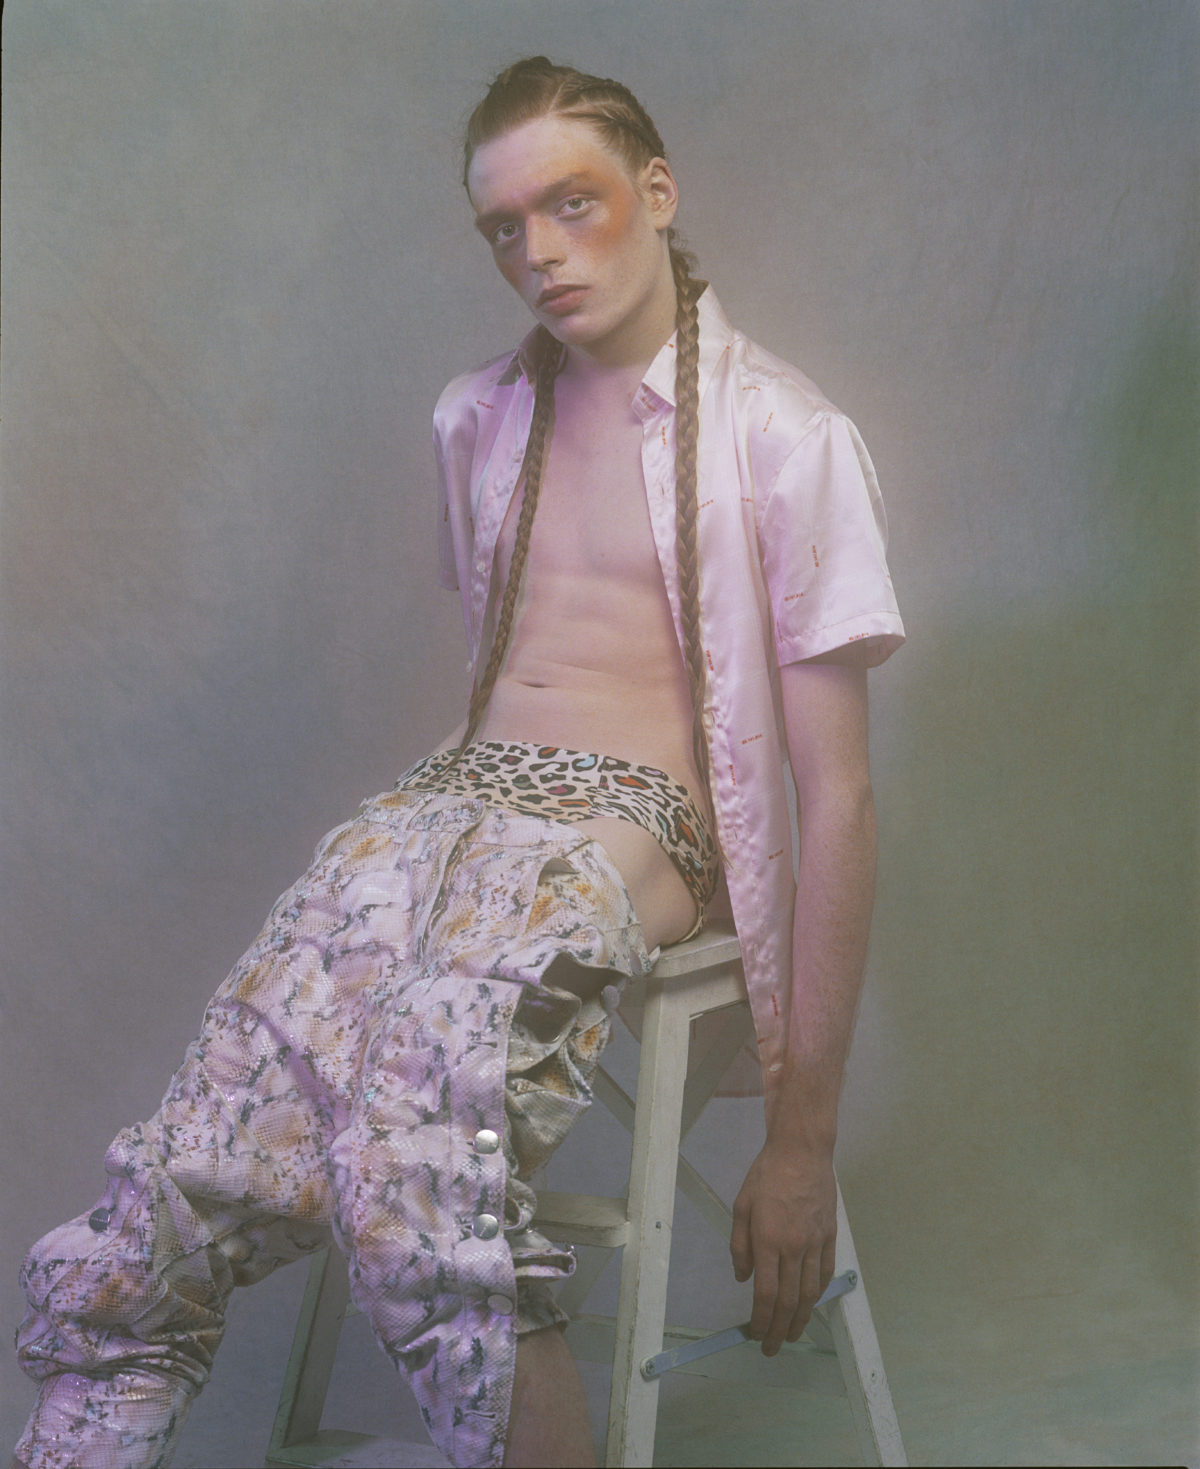 A PART PARUTIONS #2 (c) Alexandre Haefeli styled by Arthur Mayadoux with Icosae, Neith Nyer & Lucien Pellat Finet